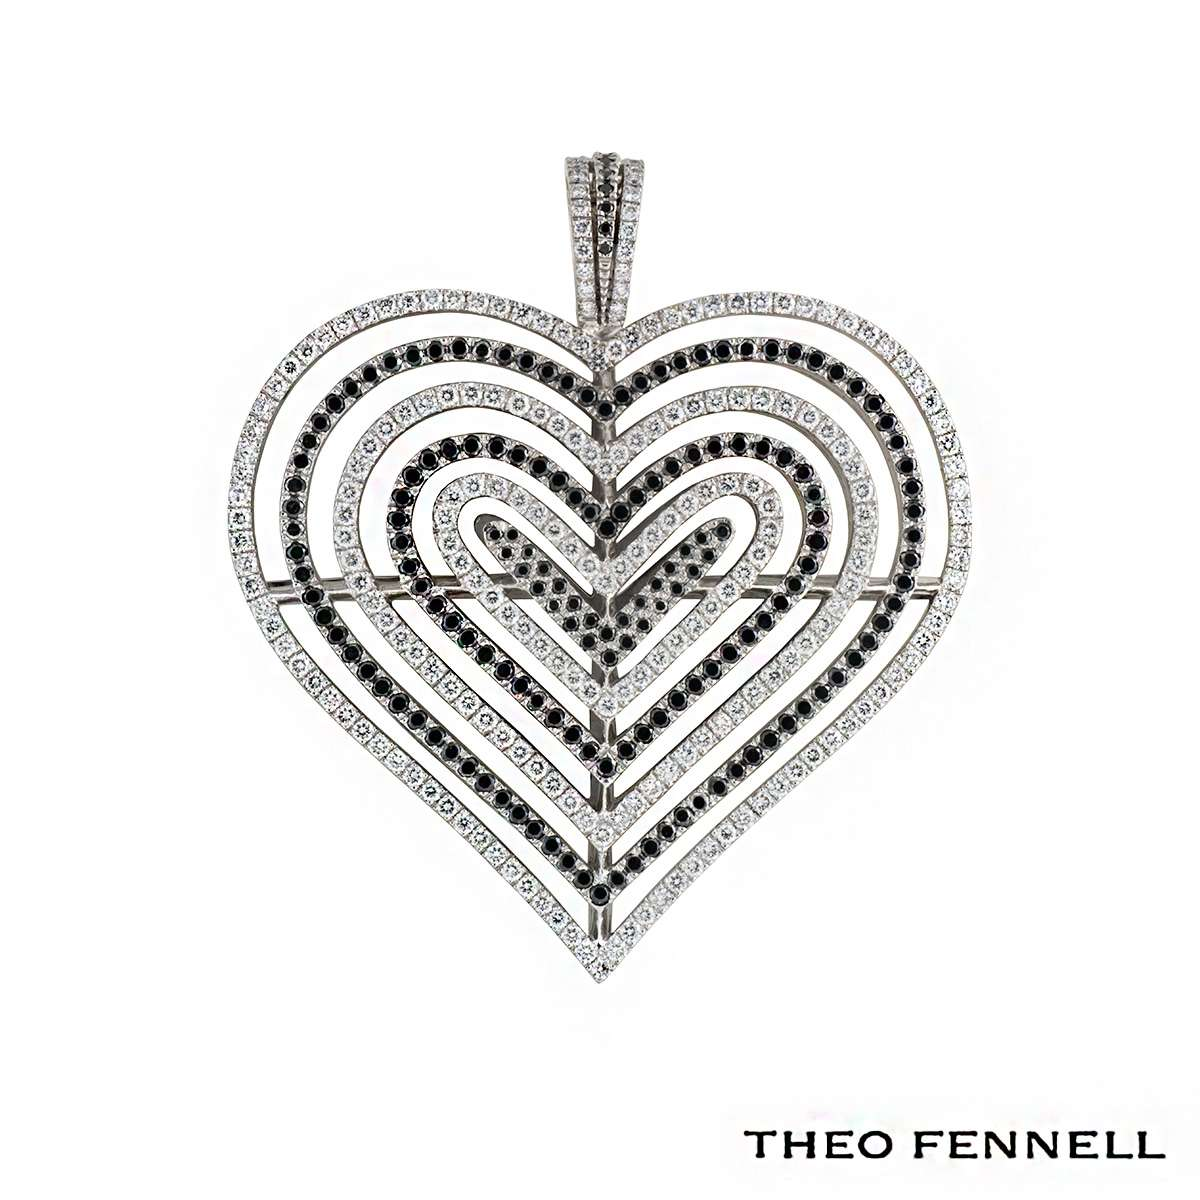 Theo Fennell 18k White Gold Diamond Pendant 2.62ct G/VS